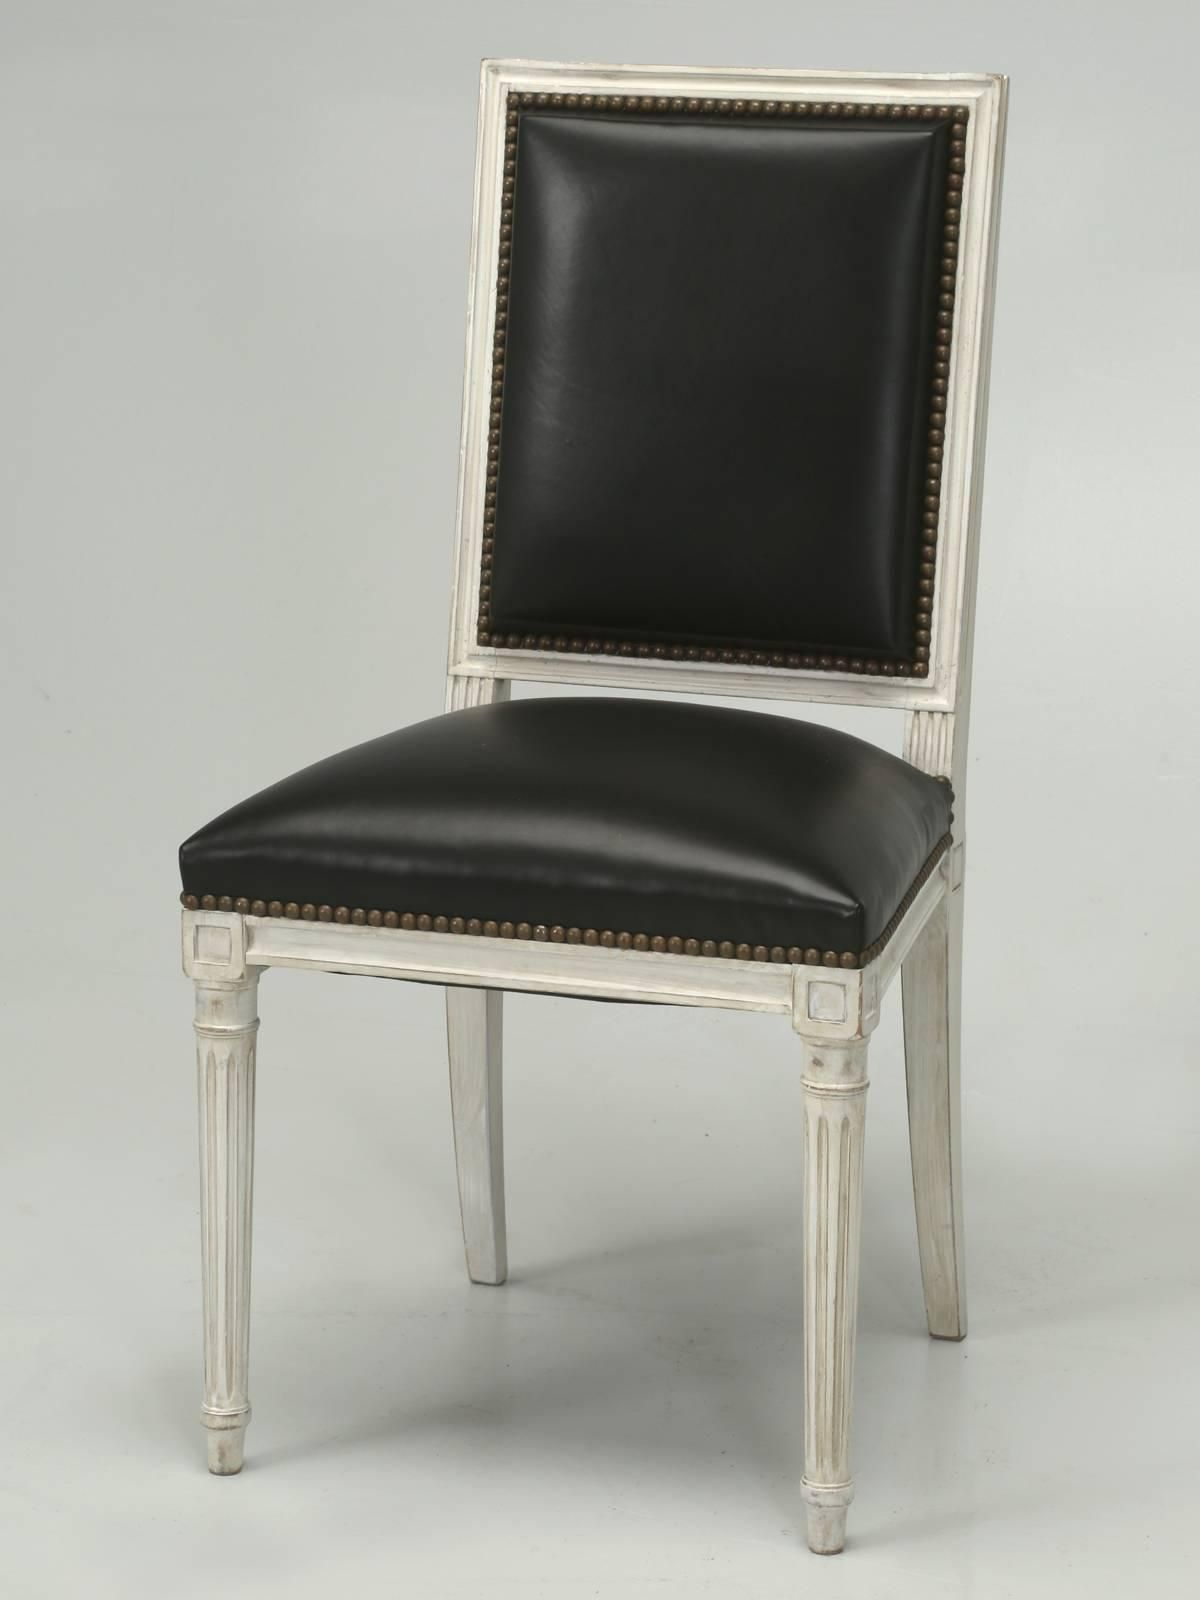 French Louis XVI Style Dining Chairs in Black Leather and Distressed White Paint For Sale at 1stdibs